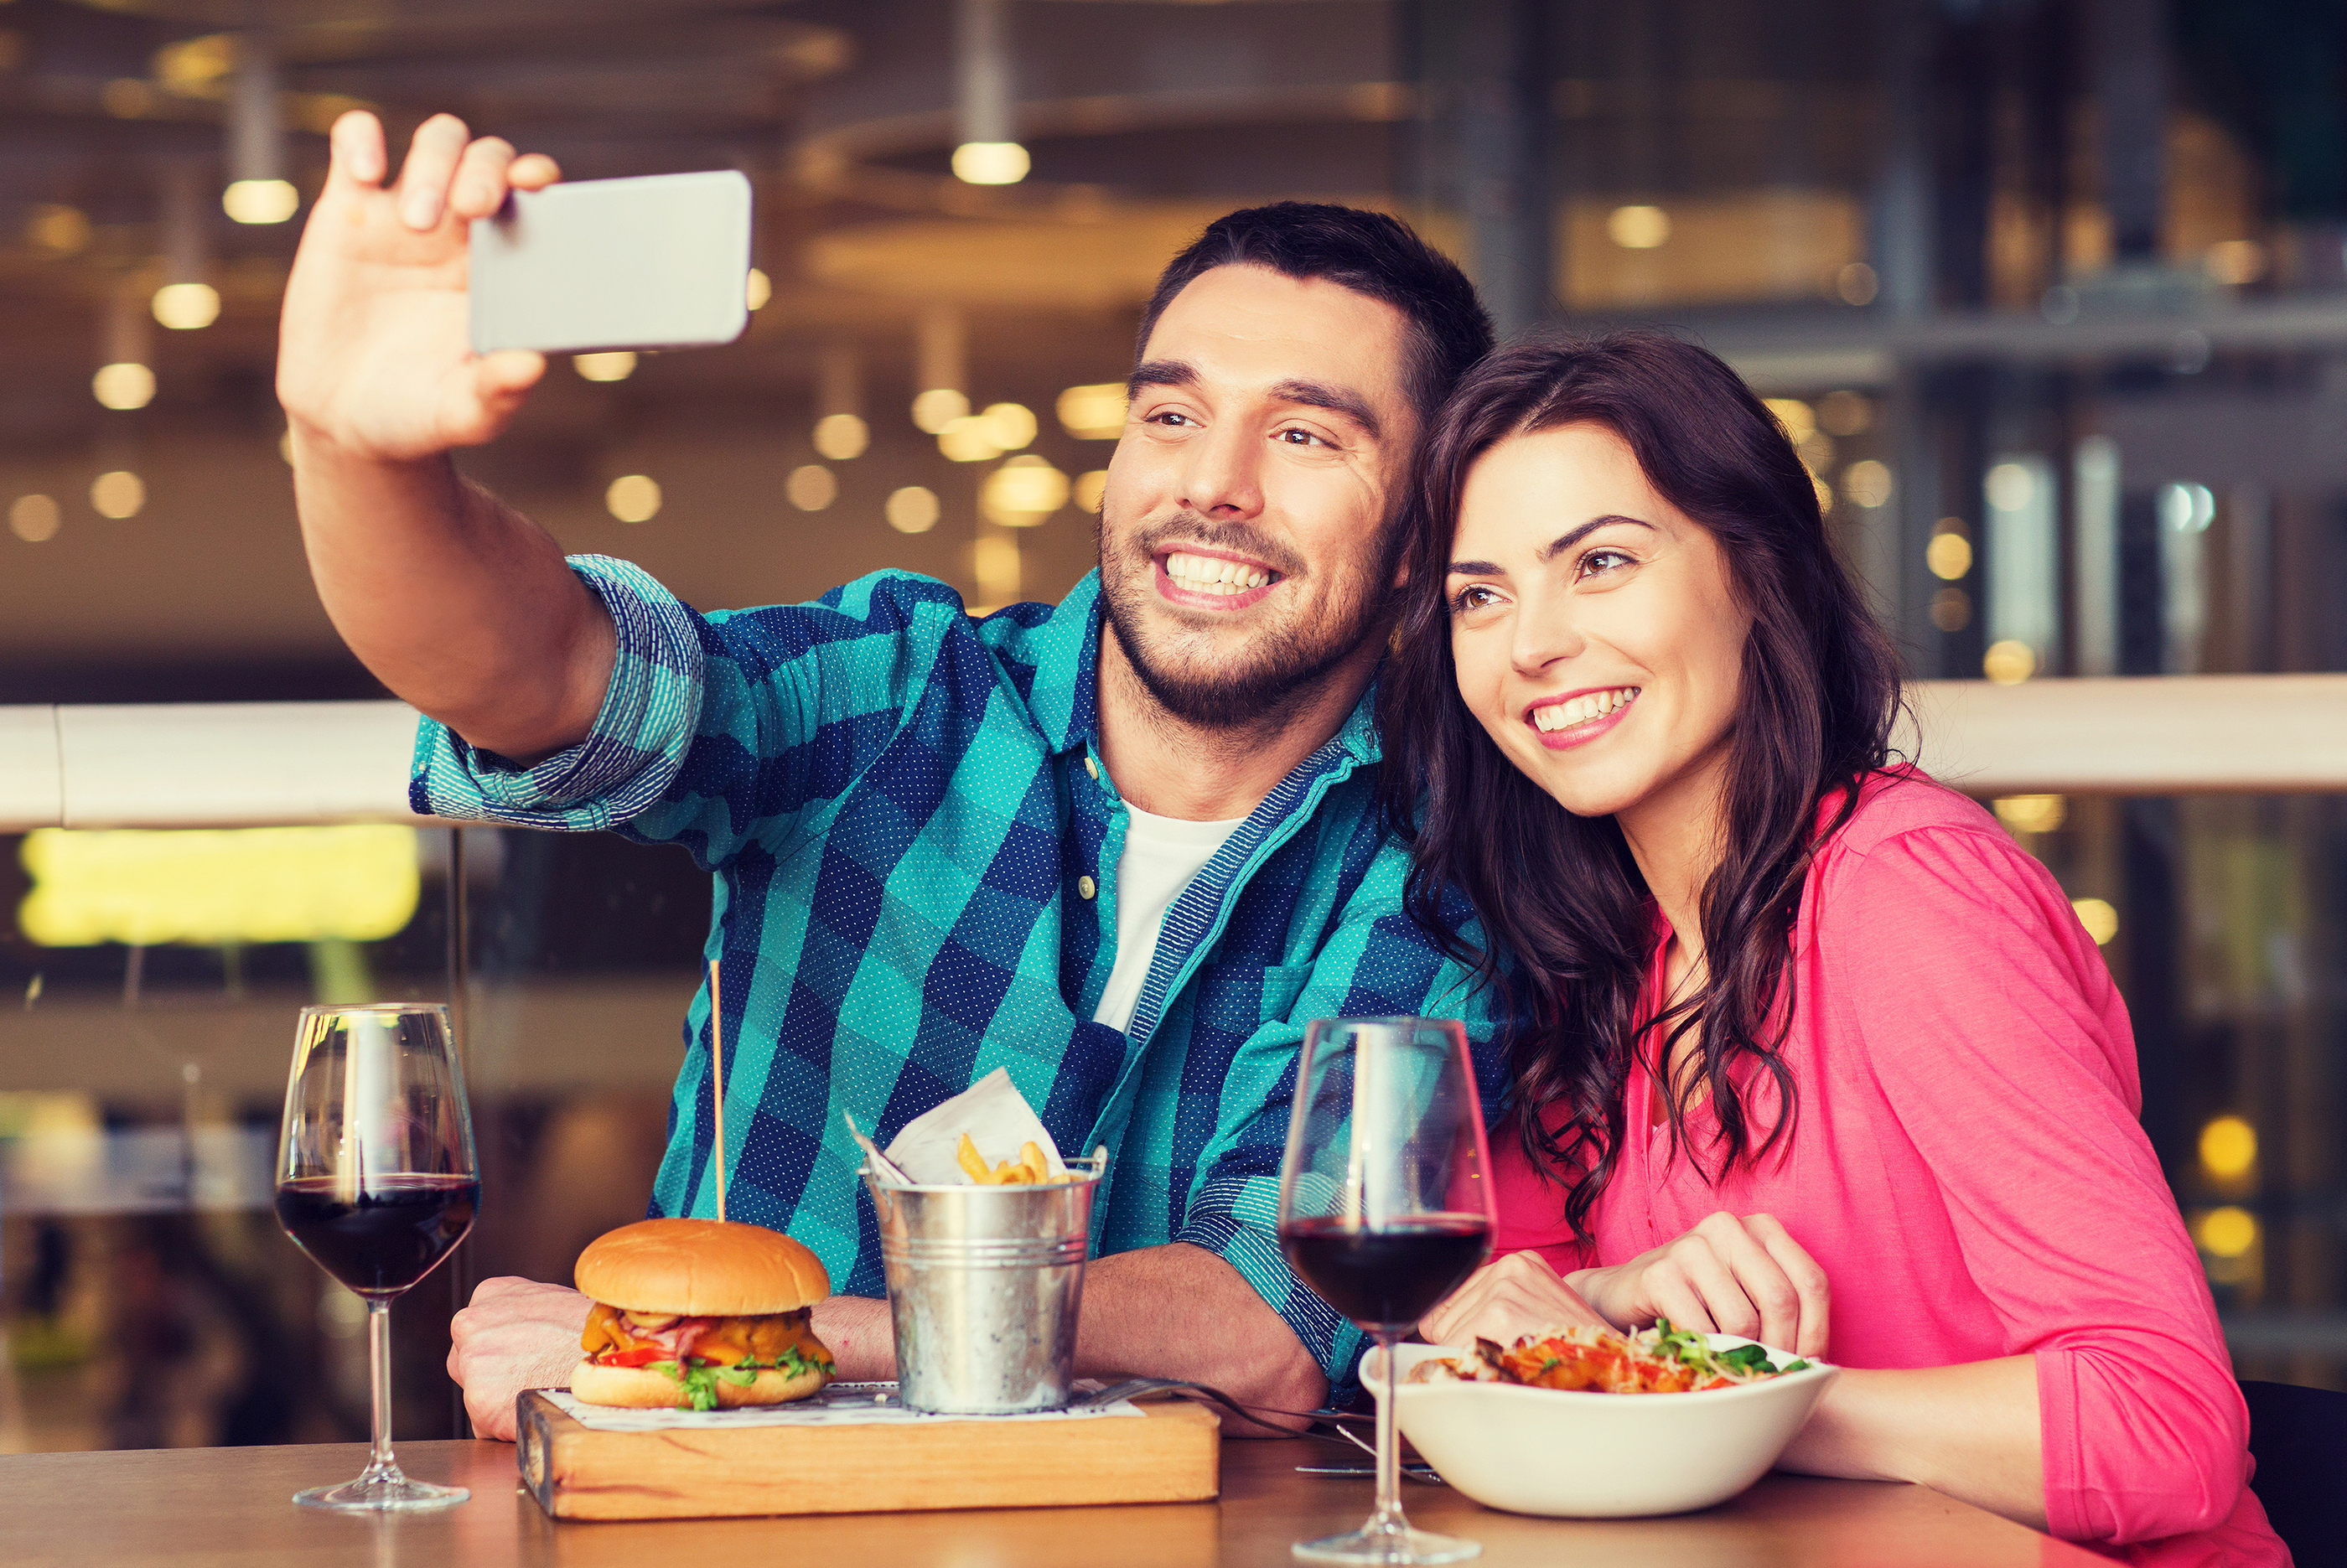 leisure, technology, date, people and holidays concept - happy couple having dinner and taking selfi